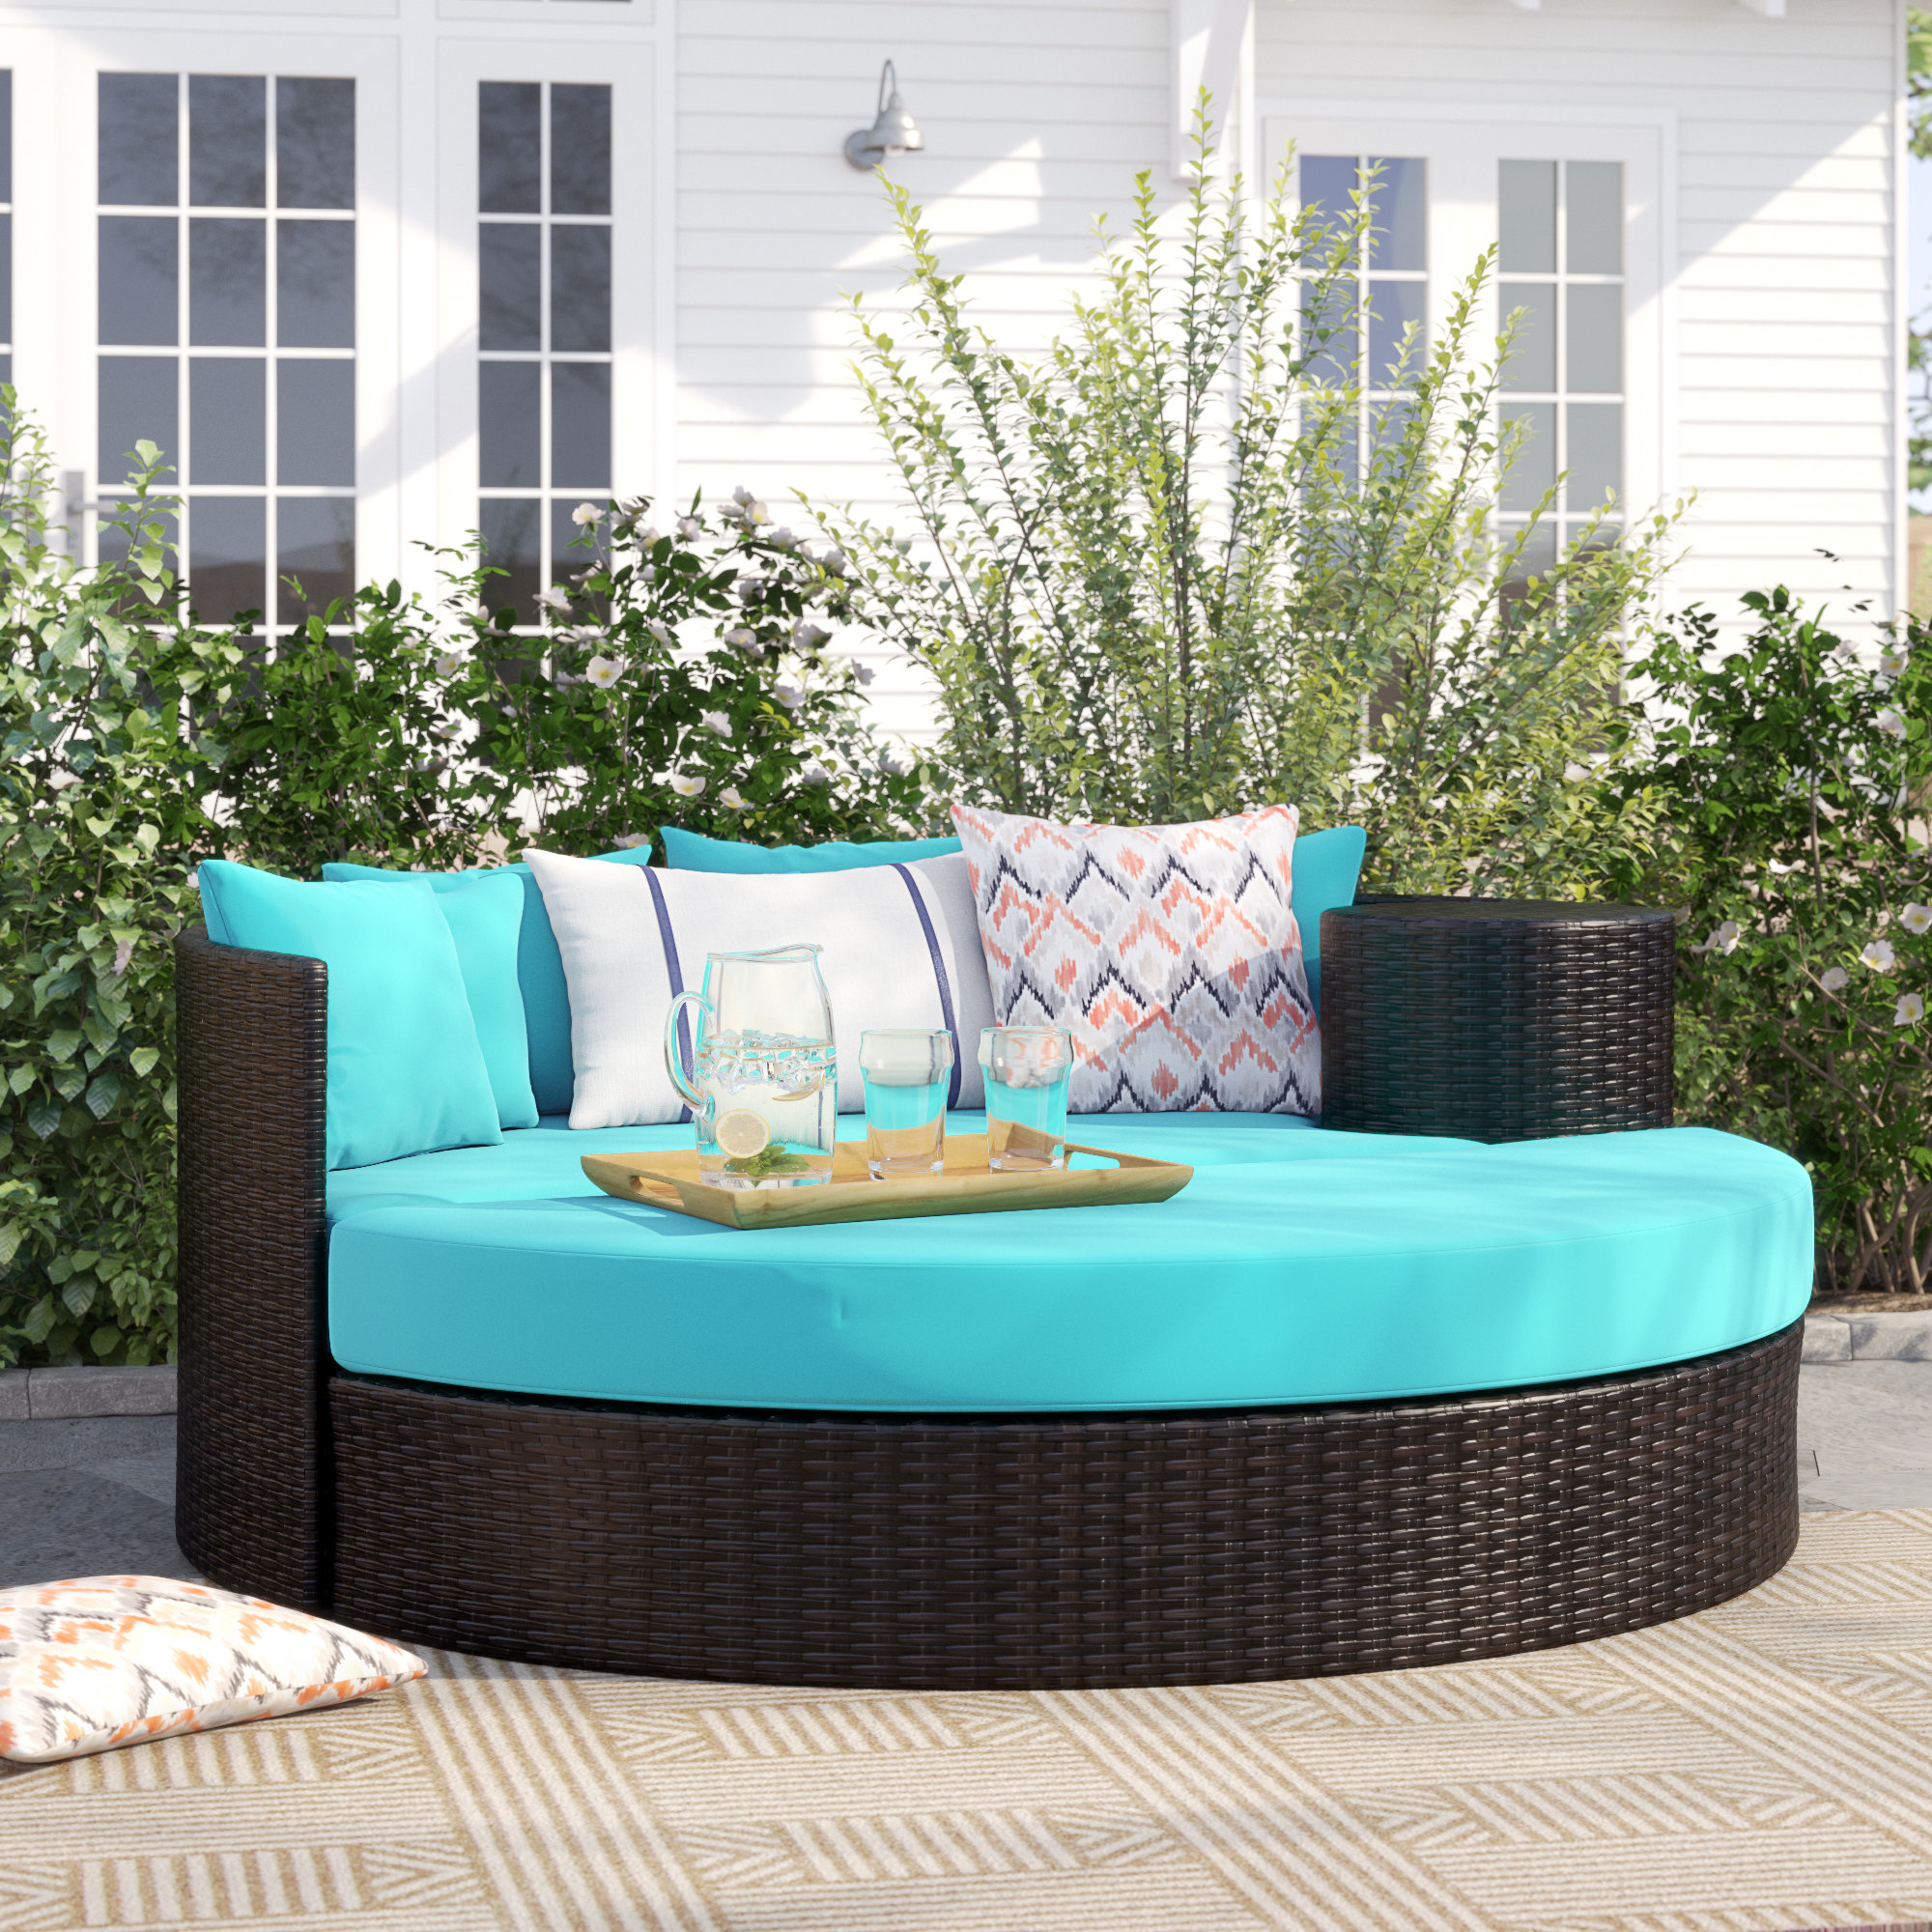 Best And Newest Sol 72 Outdoor Freeport Patio Daybed With Cushion & Reviews Regarding Patio Daybeds With Cushions (View 15 of 20)